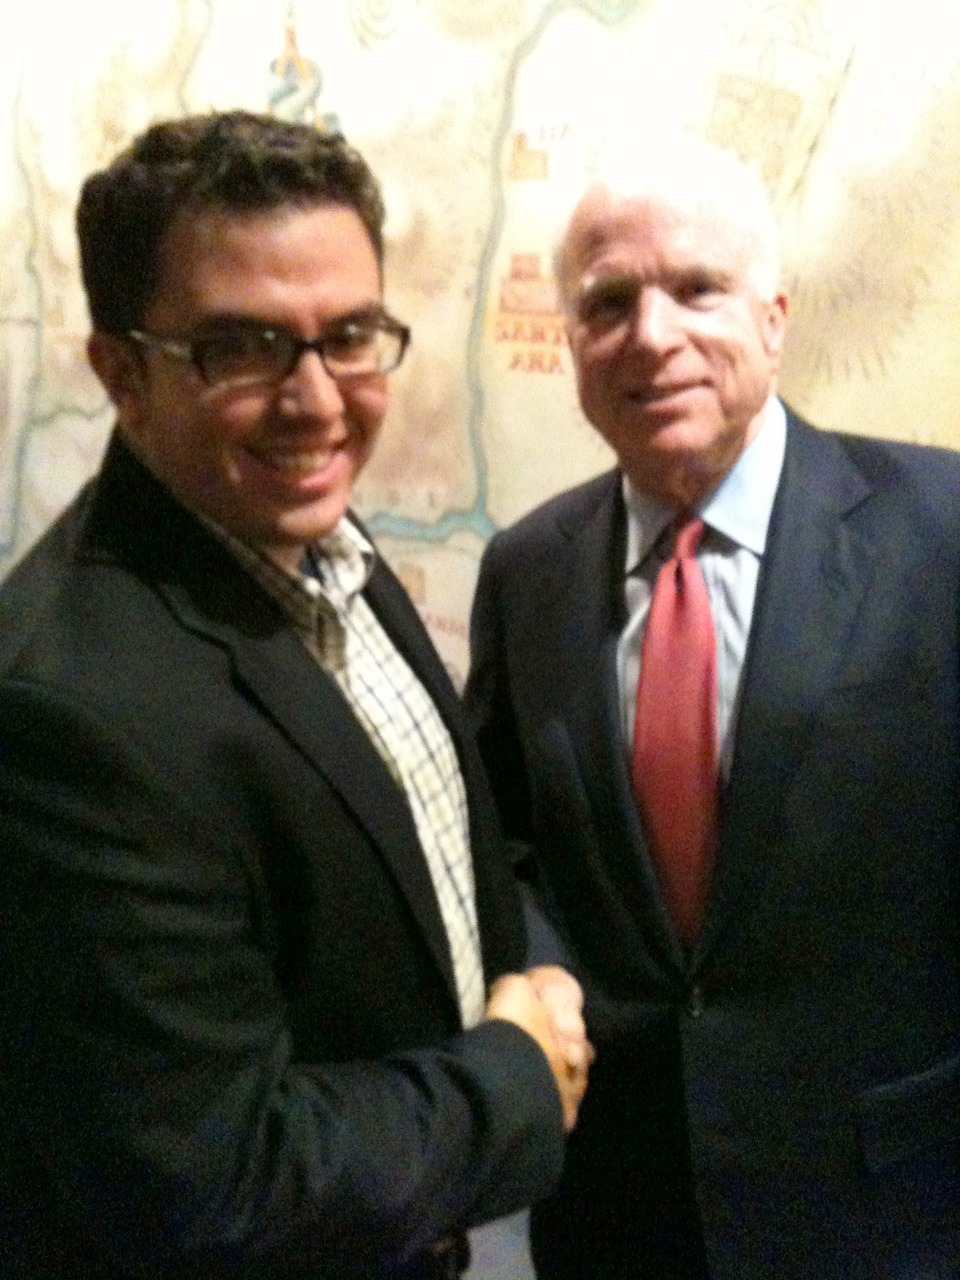 Sen. John McCain and I went I met him back in 2010.